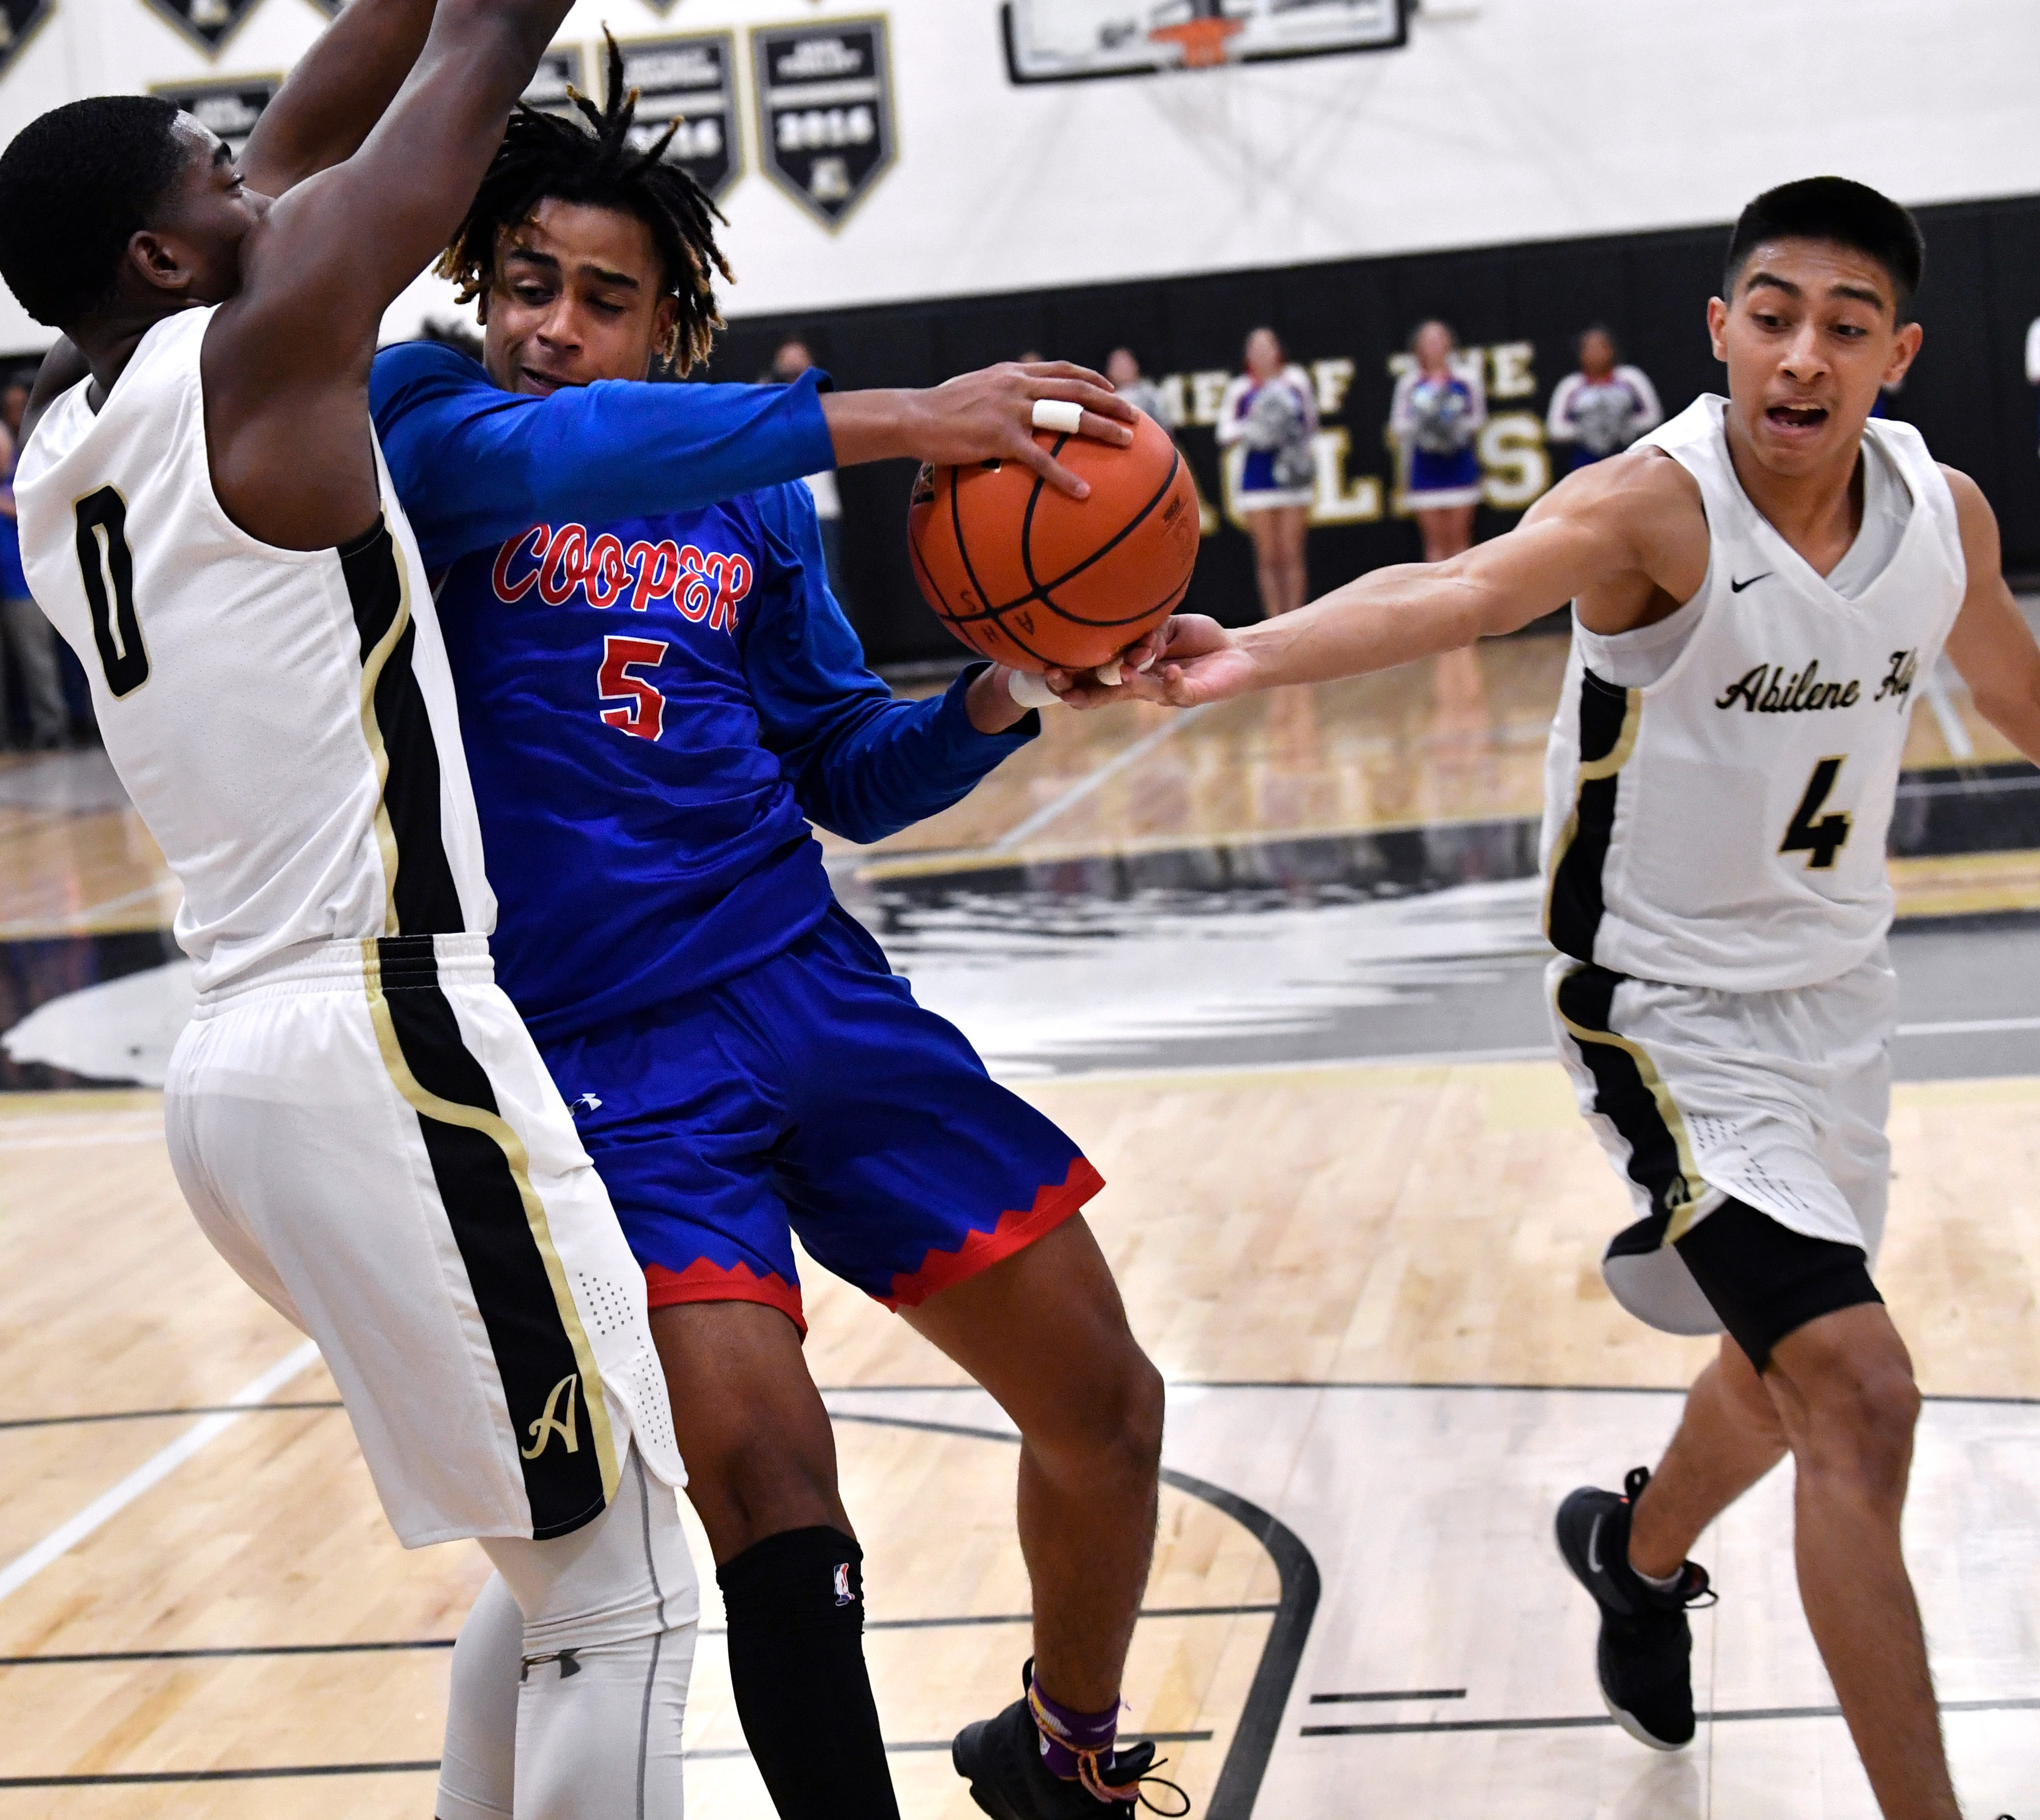 Cooper High forward Aeneas Favors shoulders into Abilene High forward Donte Cuffy as his teammate Jojo Escobedo tries to tip the ball away from Favors Friday Dec. 14, 2018. Final score was 63-52, Abilene High.